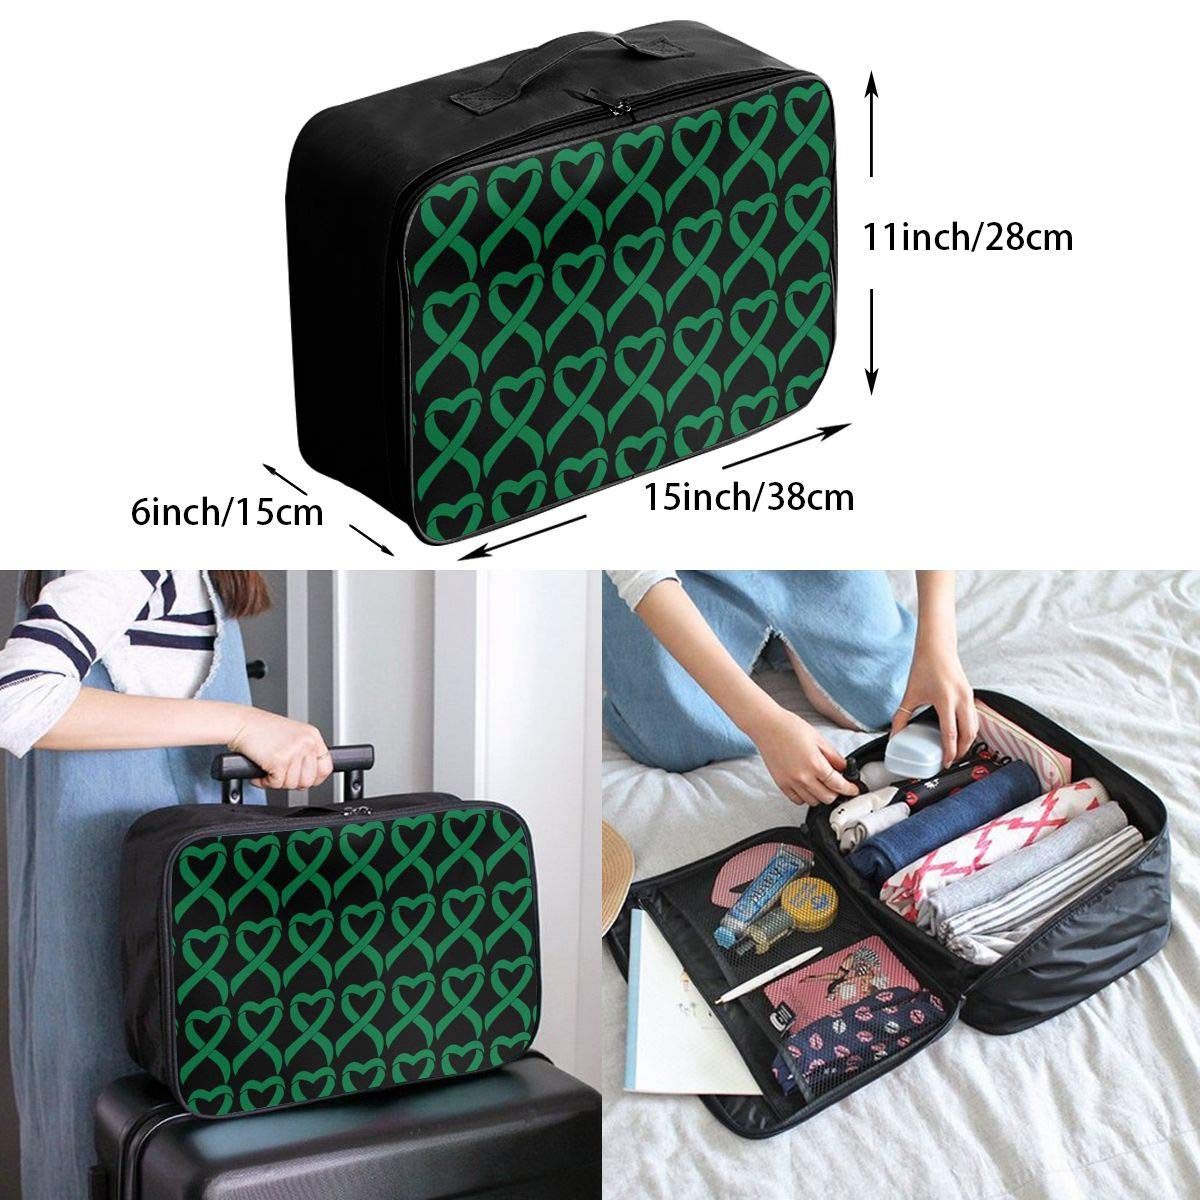 mounted On The Pull Rod Box Liver Cancer Ribbon Travel Lightweight Large Capacity Portable Waterproof Foldable Storage Carry Luggage Duffle Tote Bag